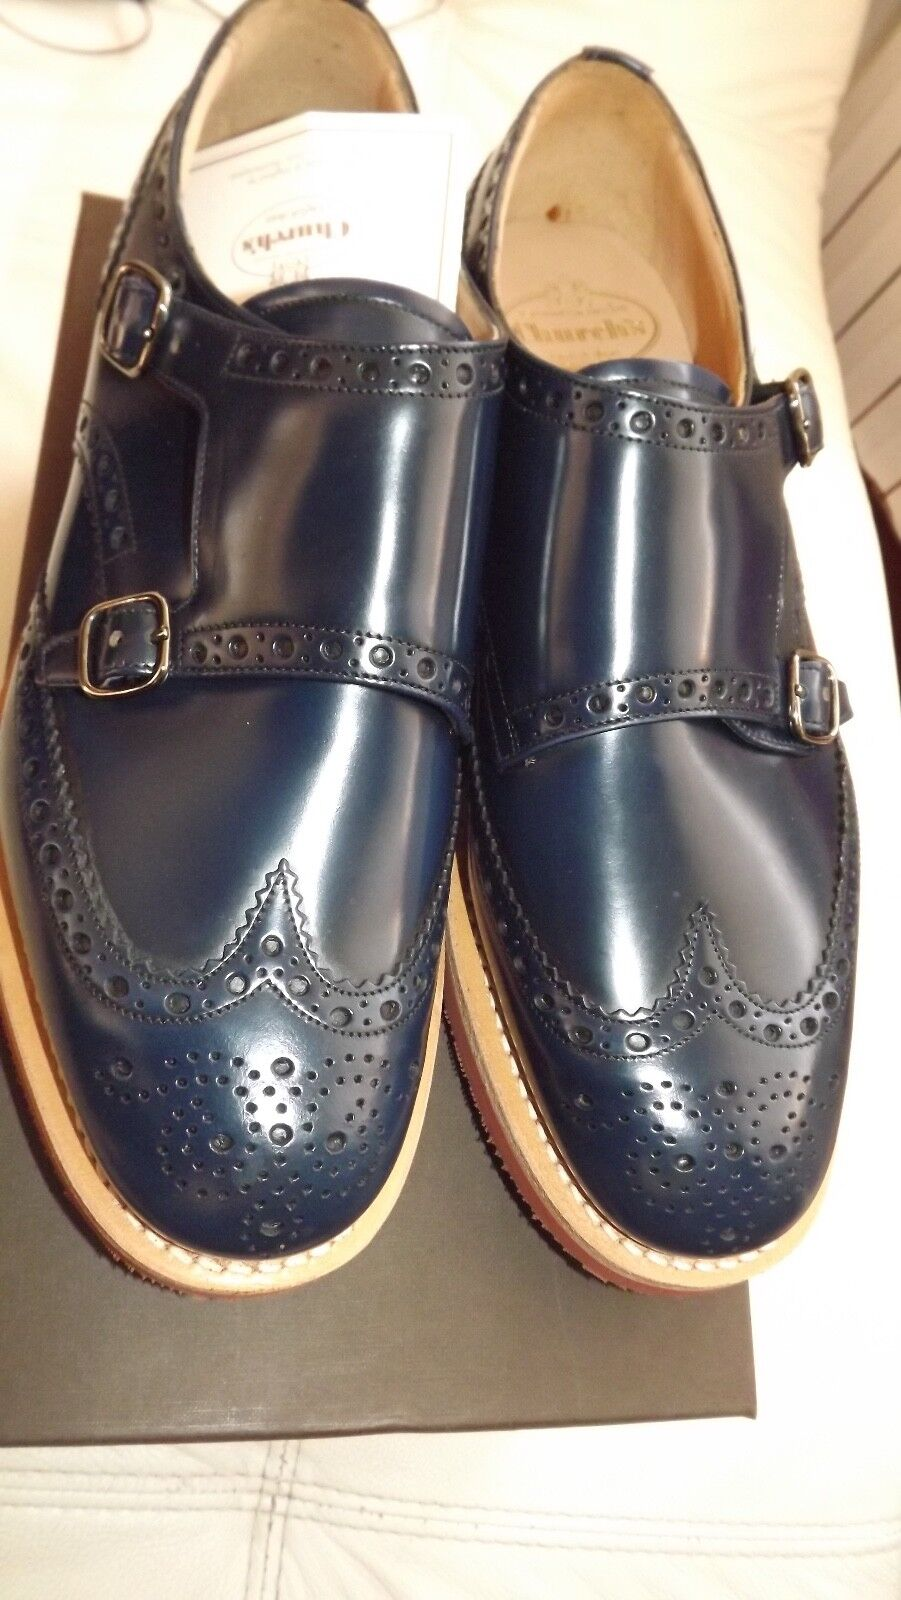 Church's London scarpe New Collection blu Leather Authentic 530,00  Cartel.40  scelte con prezzo basso